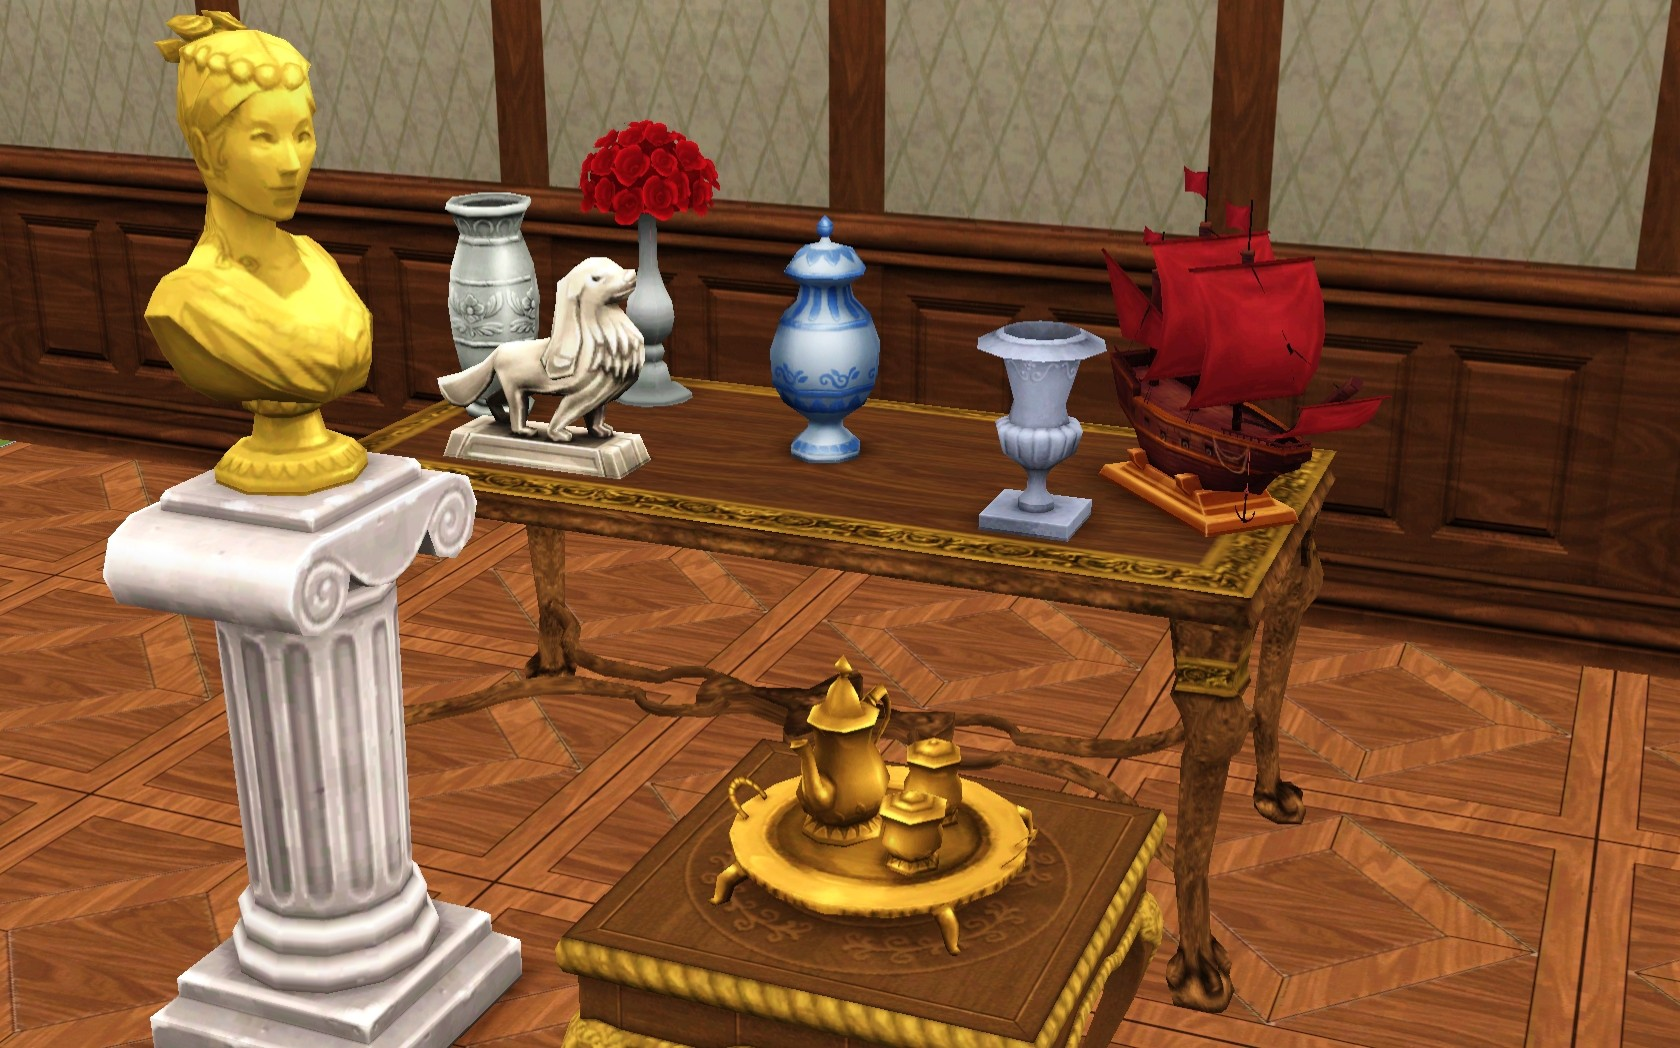 Mod The Sims Decoration Set From Ts4